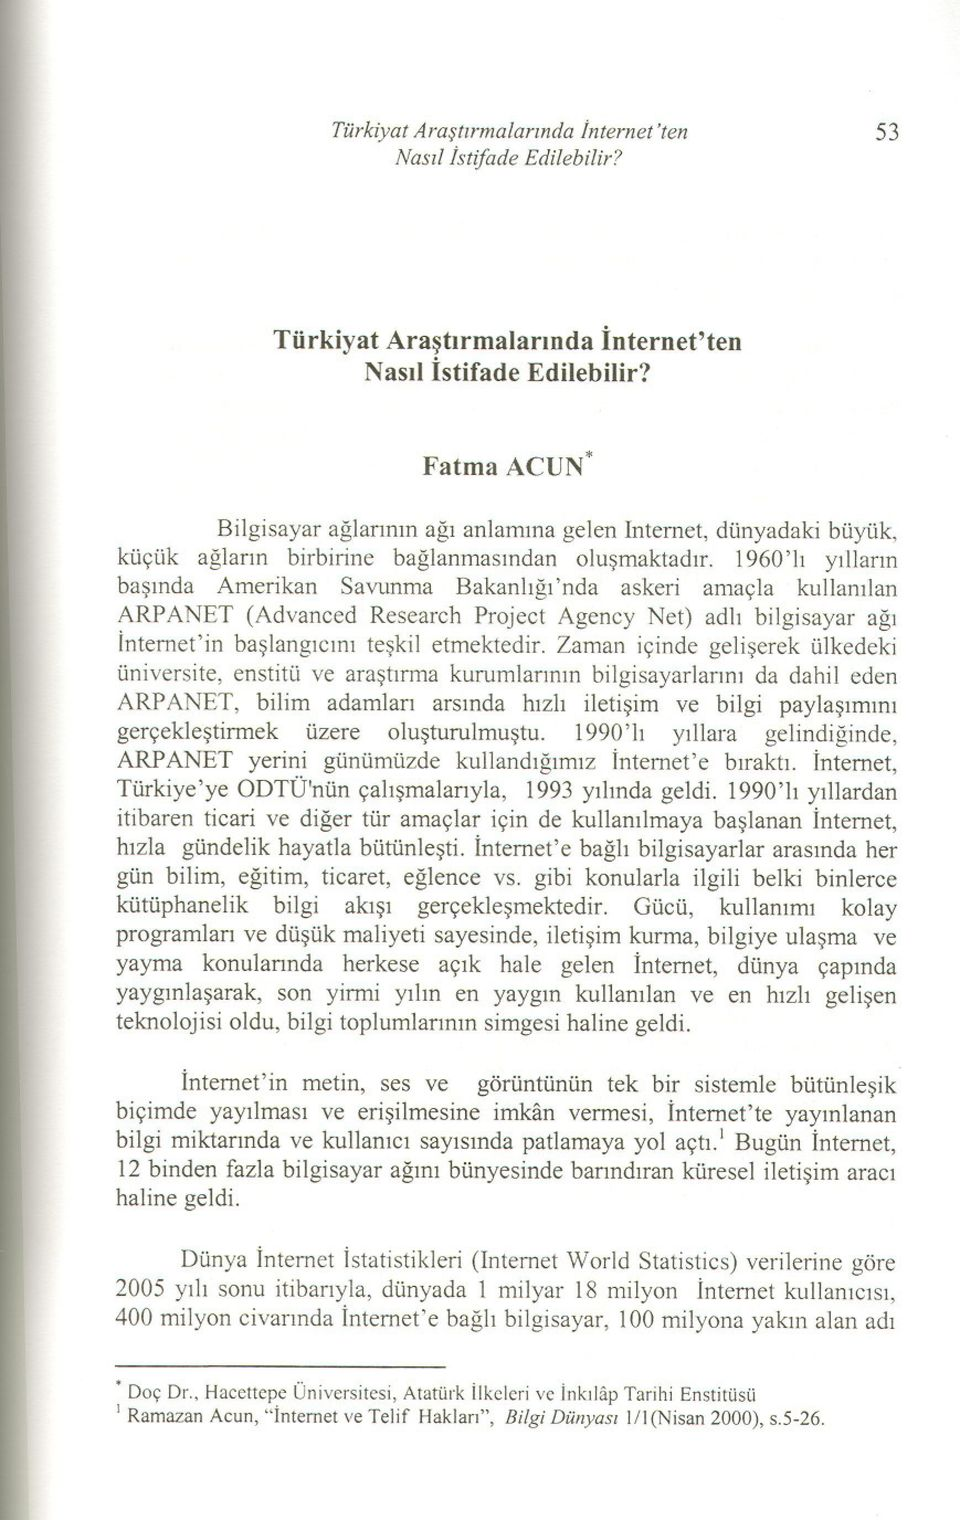 1960 'l yllarn basnda Amerkan Savunma Bakanlg 'nda asker amaçla kullanlan ARP ANET (Advanced Research Prject Agency Net) adl blgsayar ag Internet'n baslangcn teskl etmektedr.